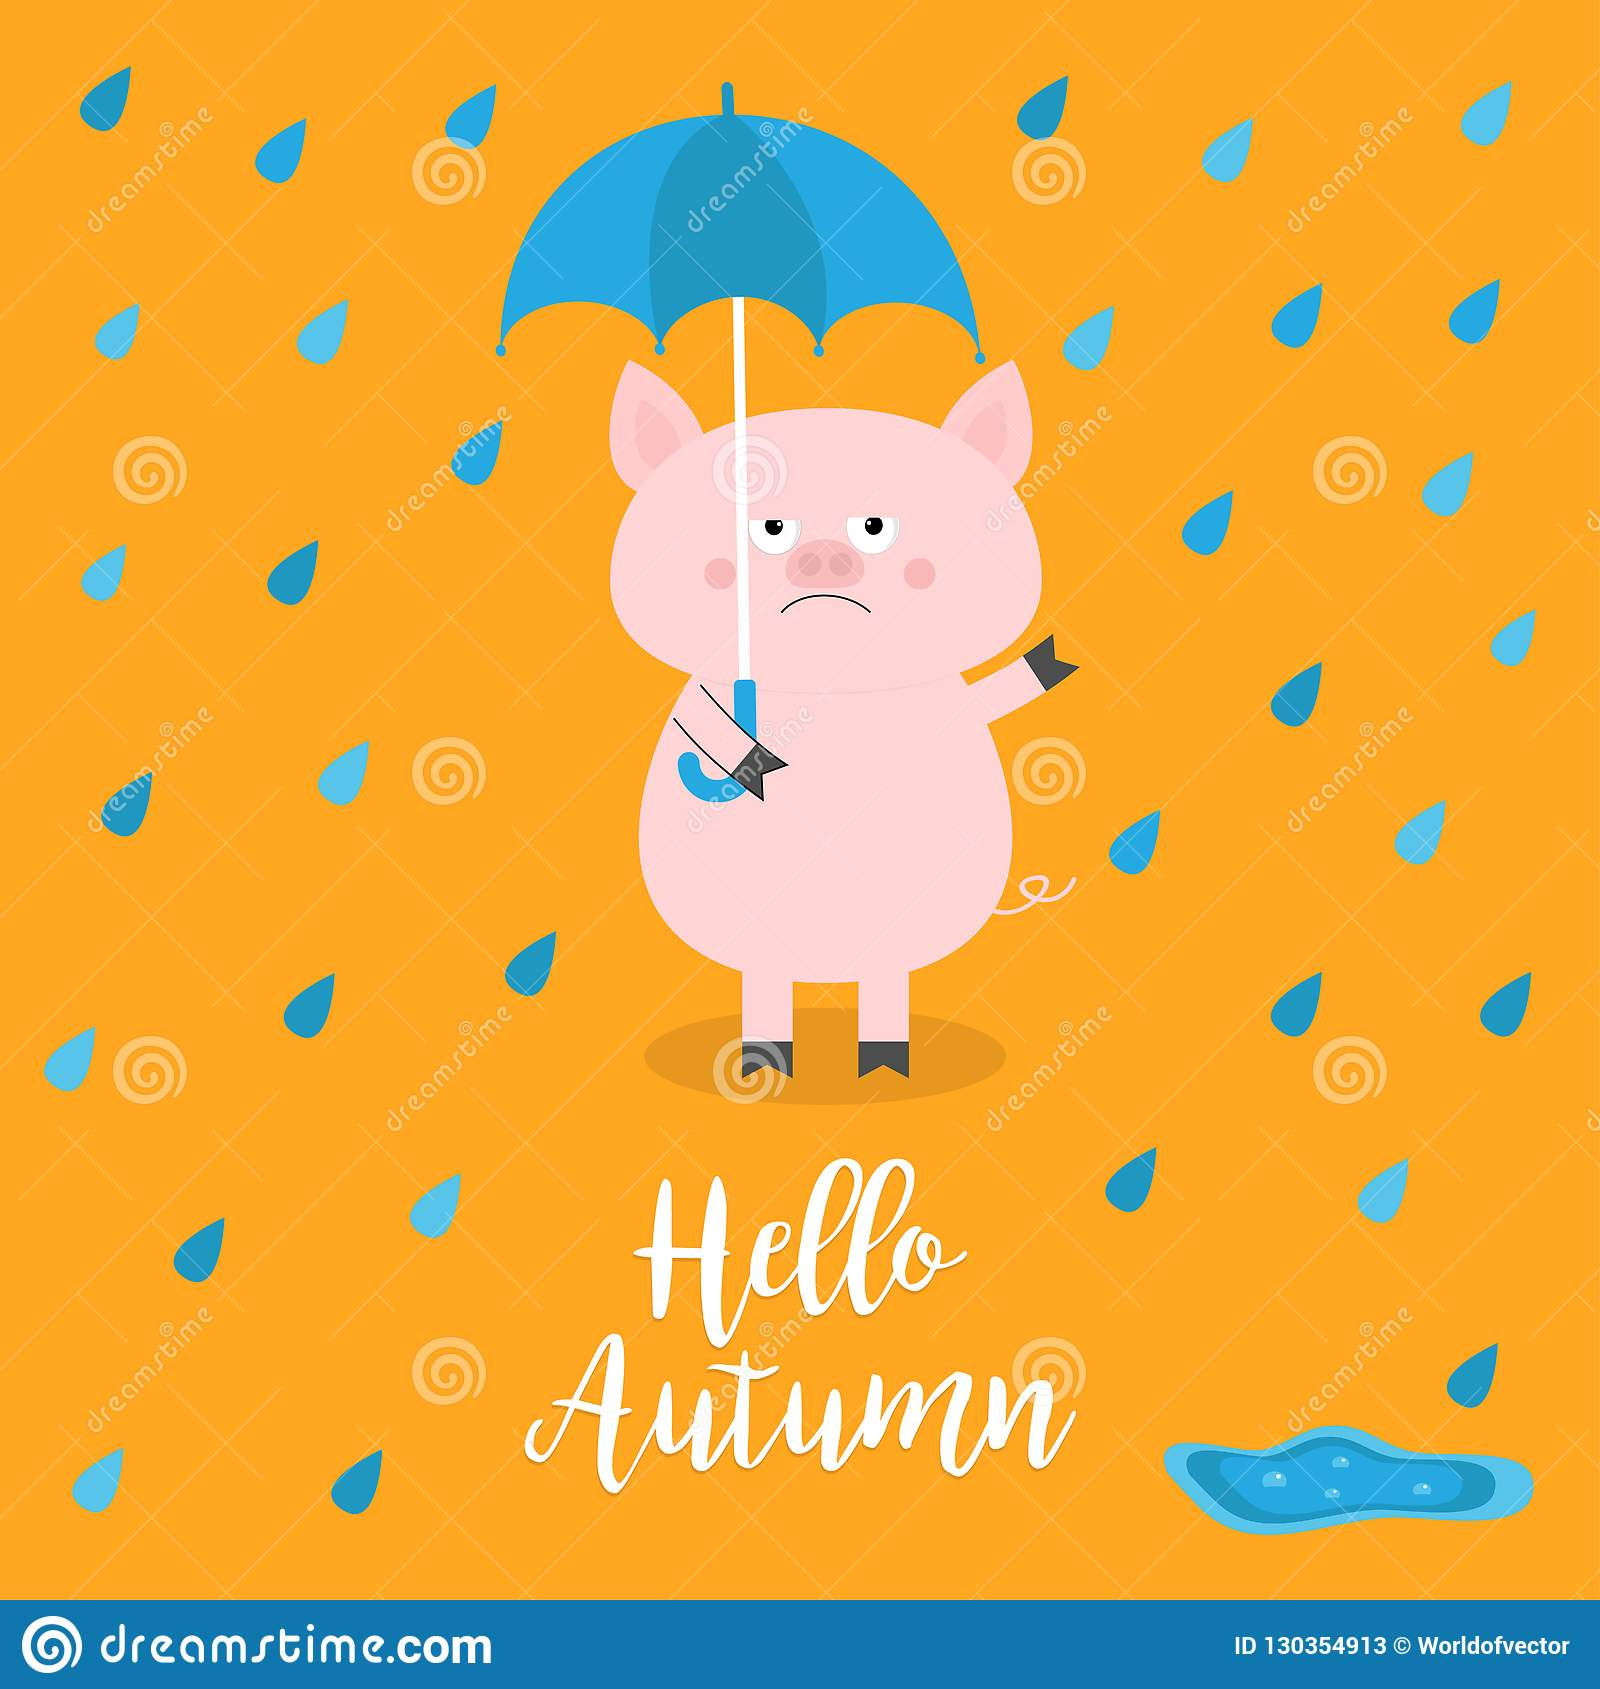 Hello autumn. Pig holding blue umbrella. Rain drops, puddle. Angry sad emotion. Hate fall. Cute funny cartoon baby character. Pet